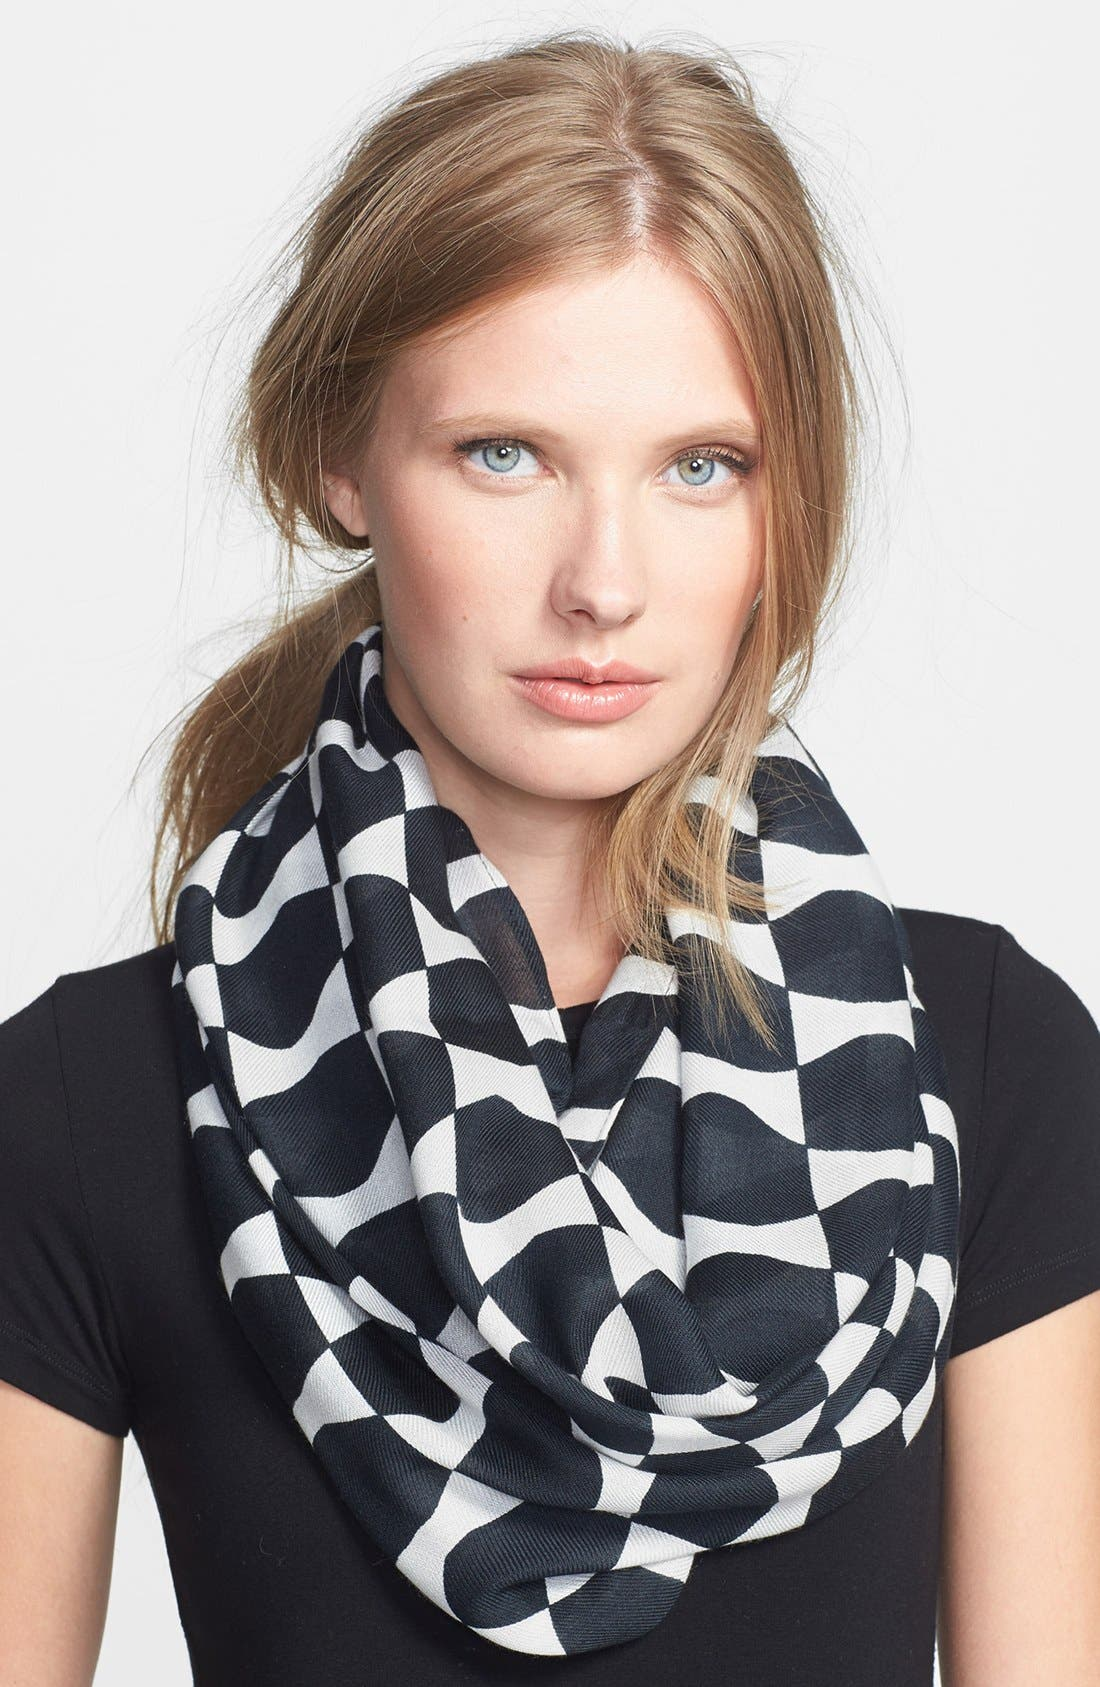 Alternate Image 1 Selected - kate spade new york 'abstract bow' infinity scarf